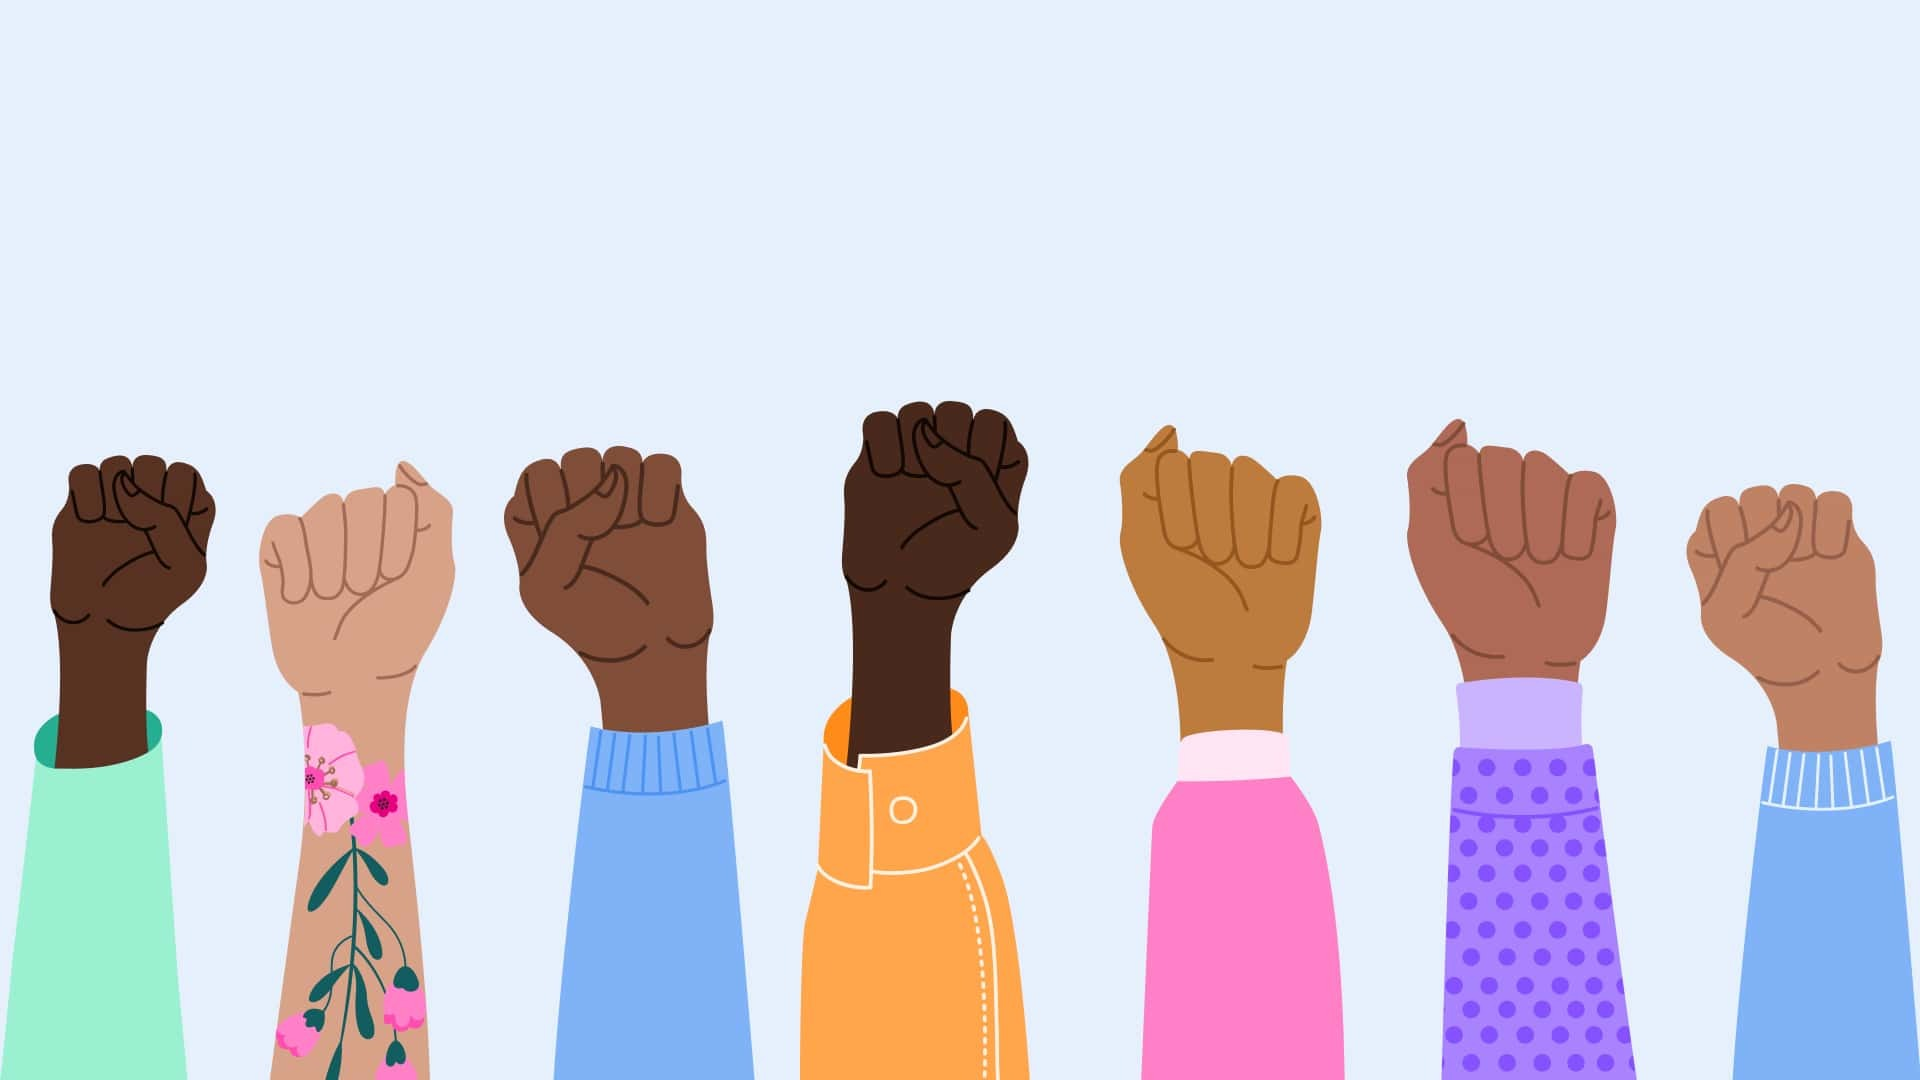 Invoca's Commitment to Anti-Racism and Driving Lasting Change